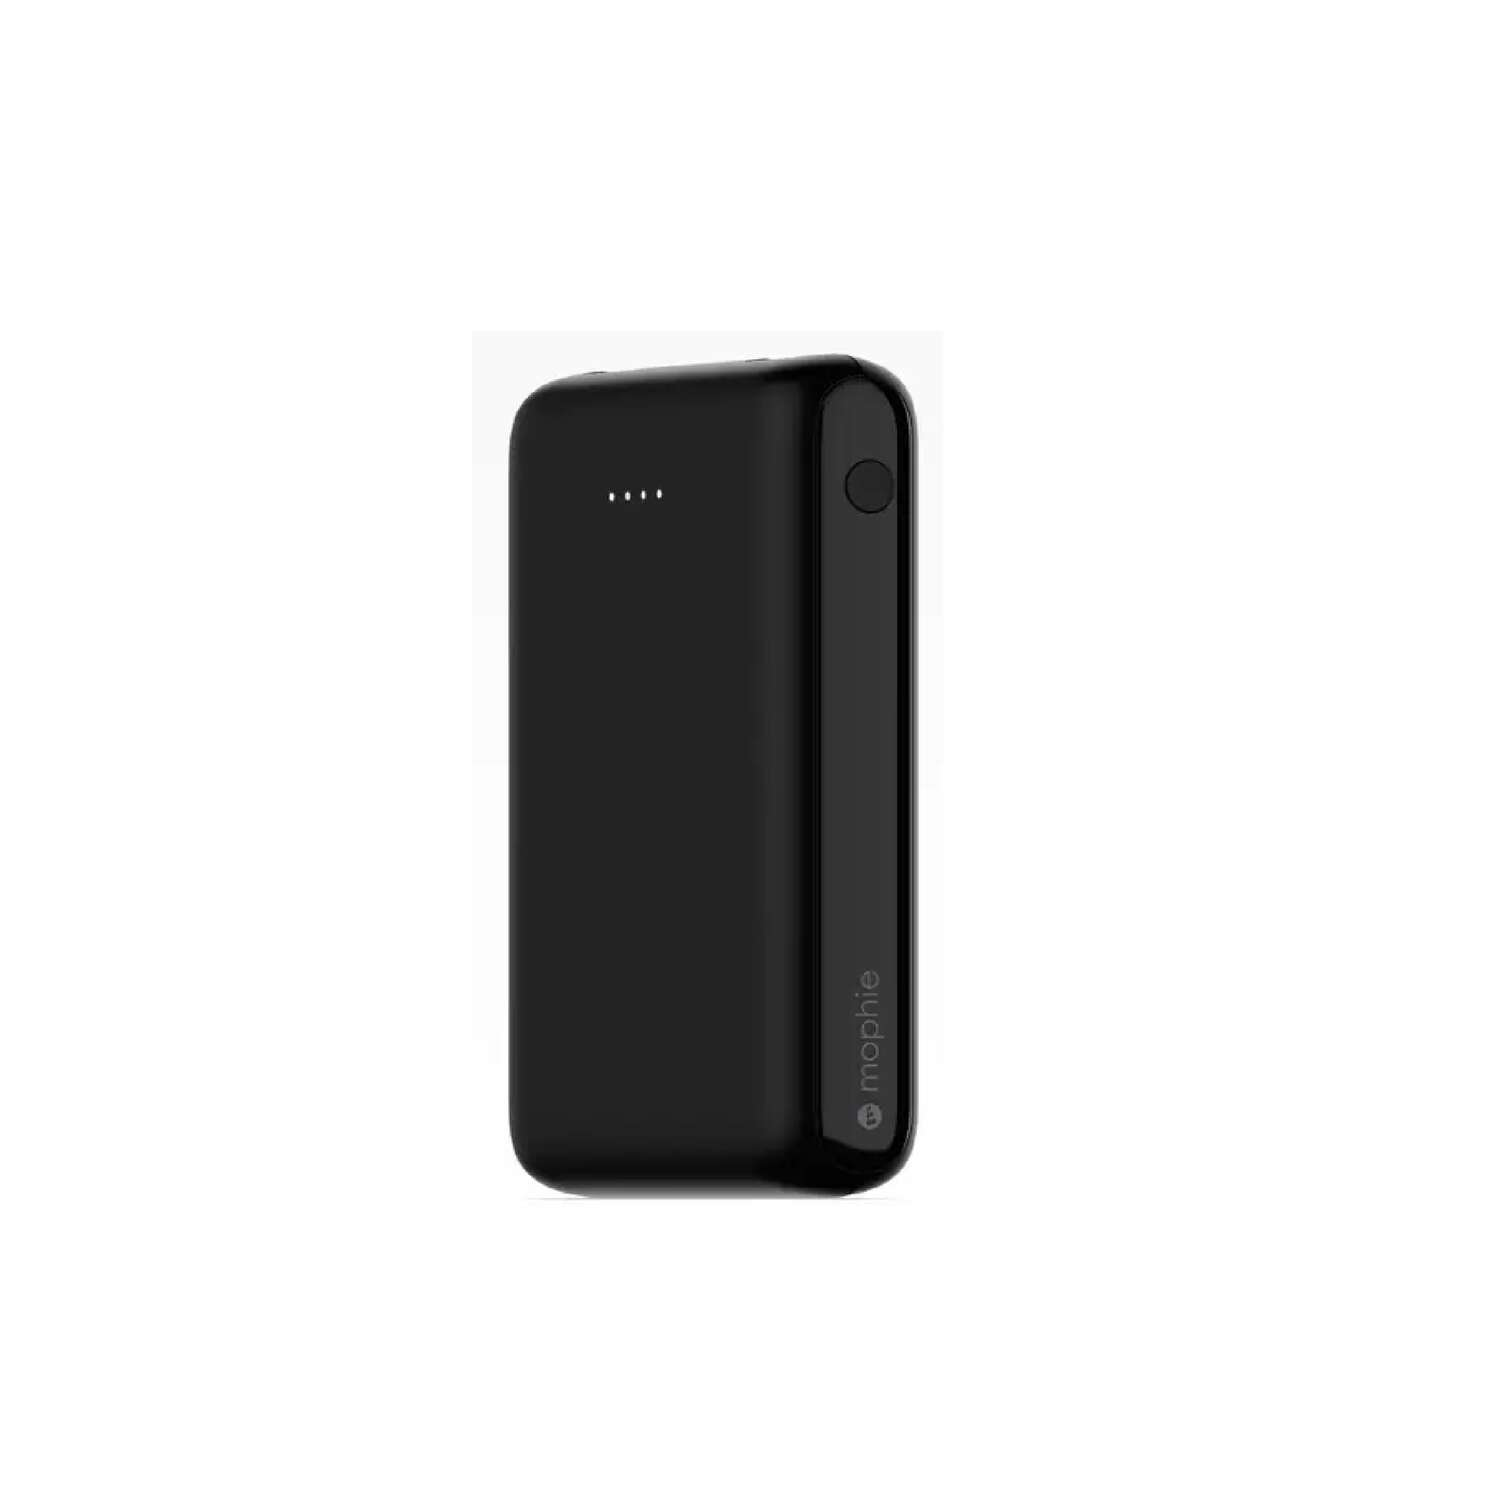 Mophie Zagg 0 75 Ft L Power Boost Xl Ace Hardware According to zagg ceo randy hales, acquiring mophie will create numerous opportunities to increase revenues and profits. ace hardware